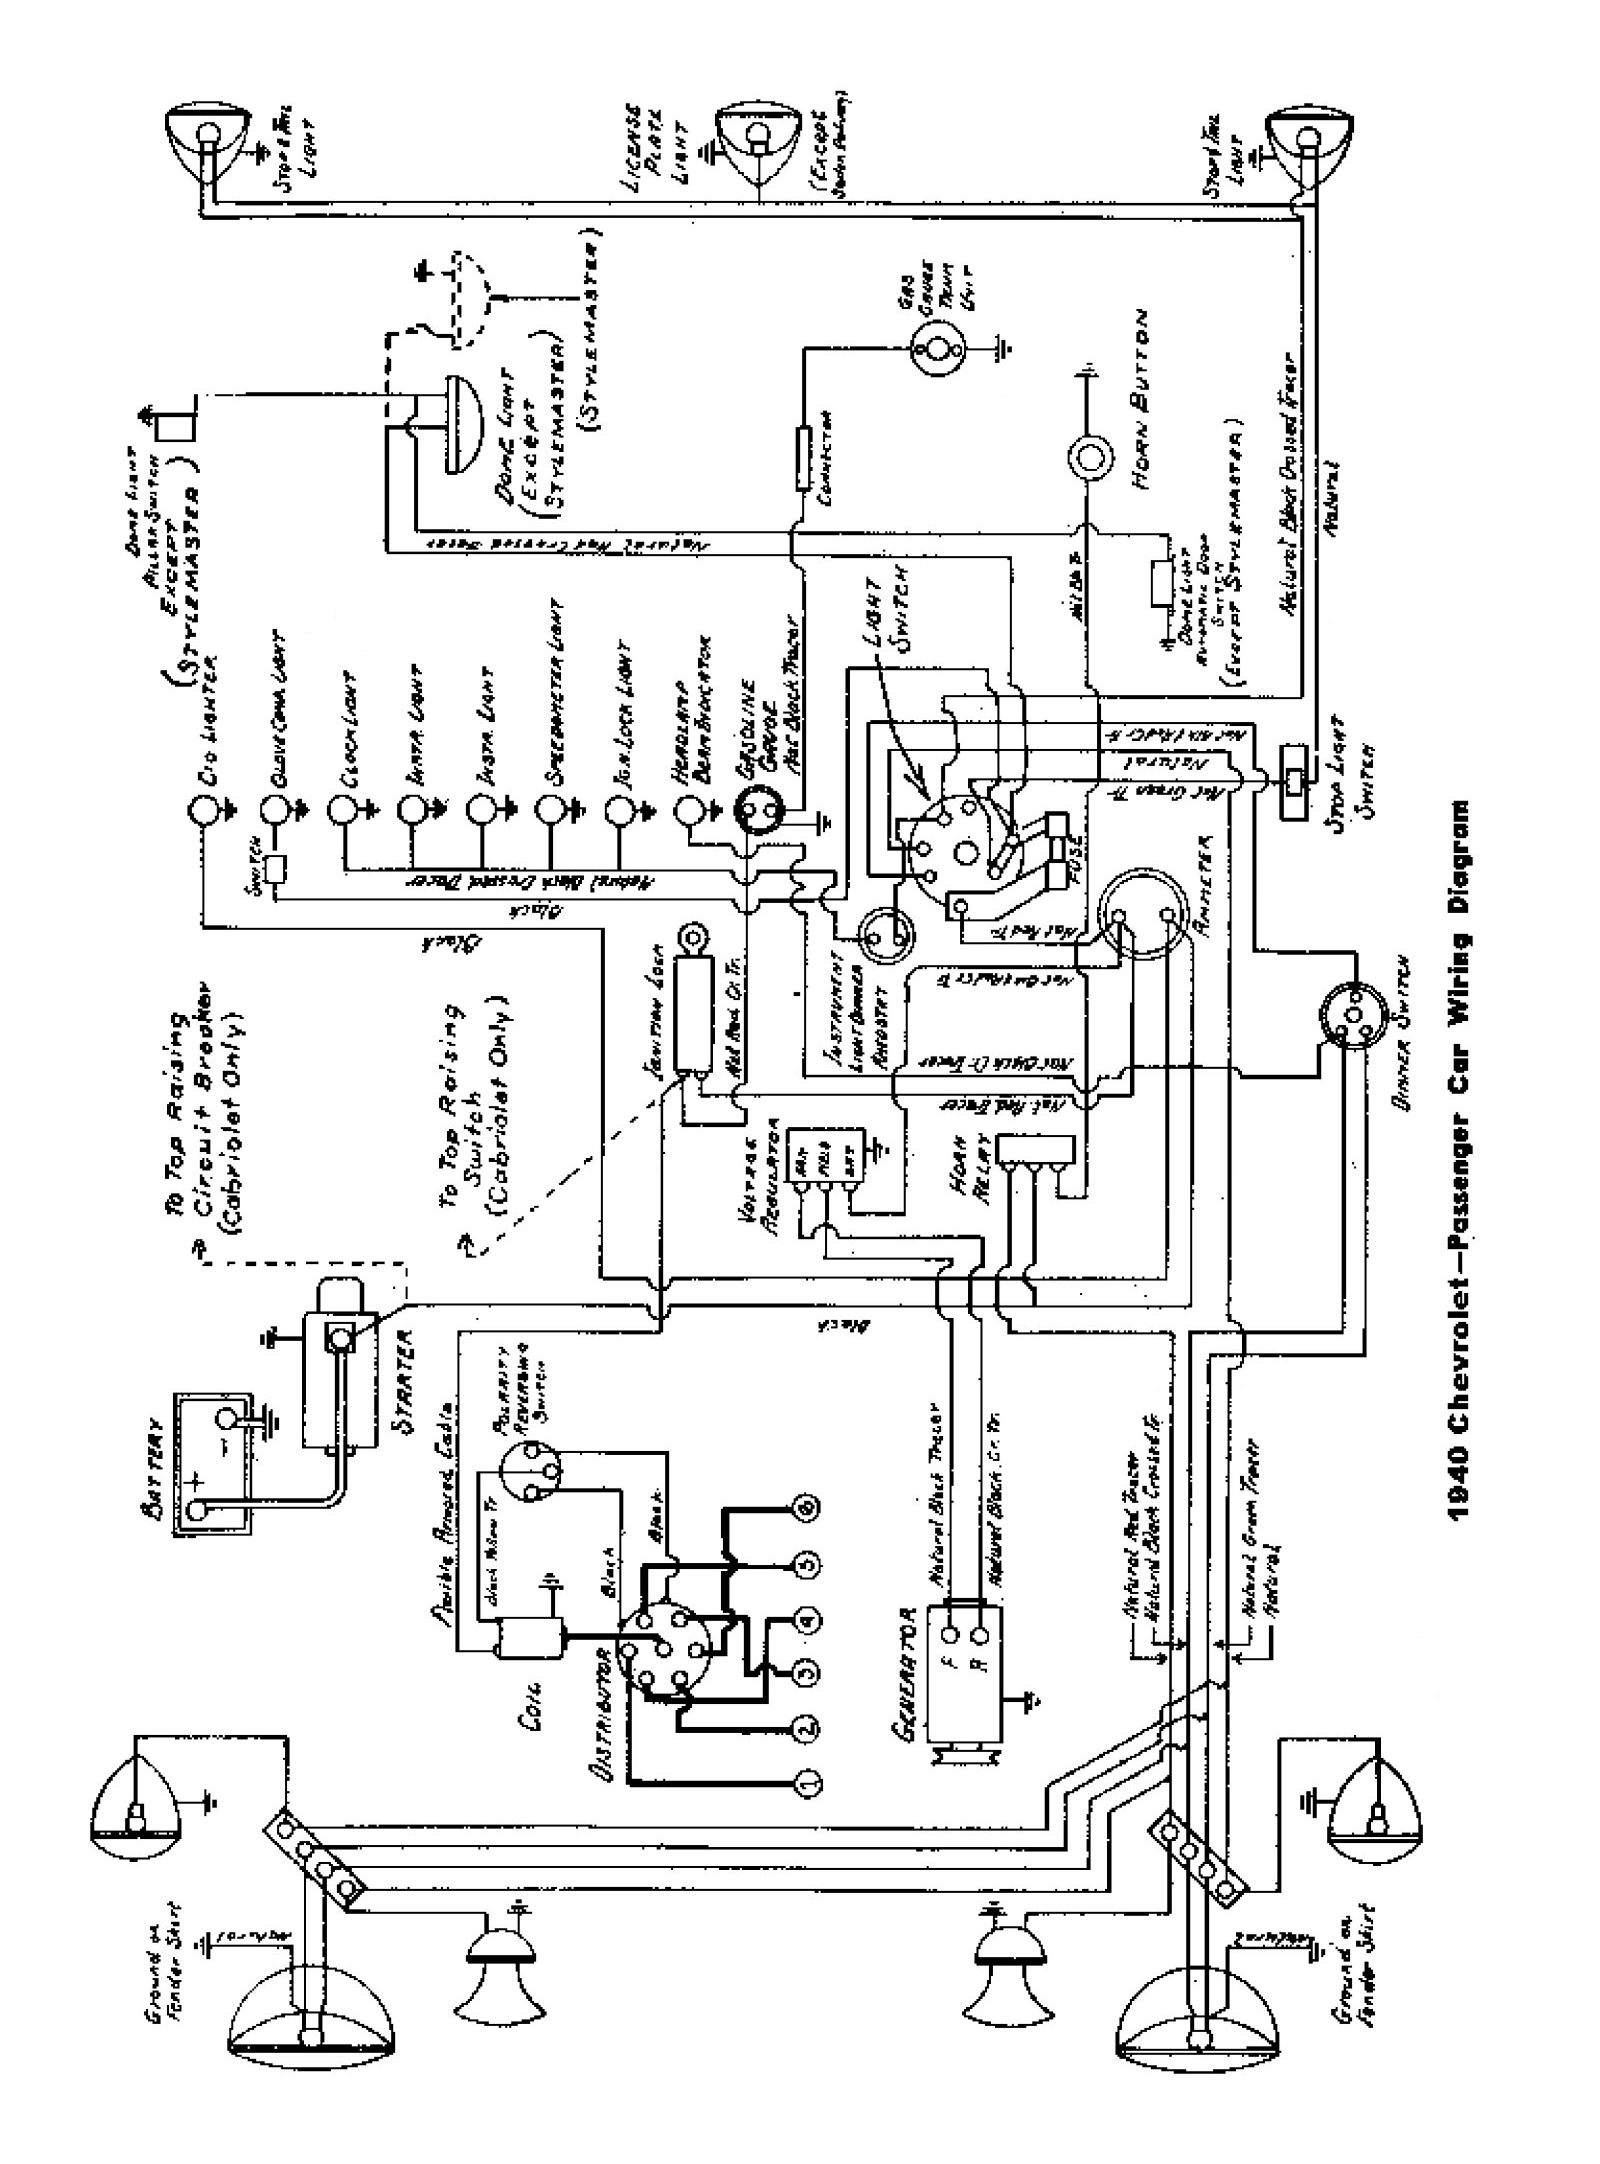 1951 chevy dash wiring wiring diagram 1951 Chevy Truck Wiring Harness Diagram 1949 chevy truck wiring harness